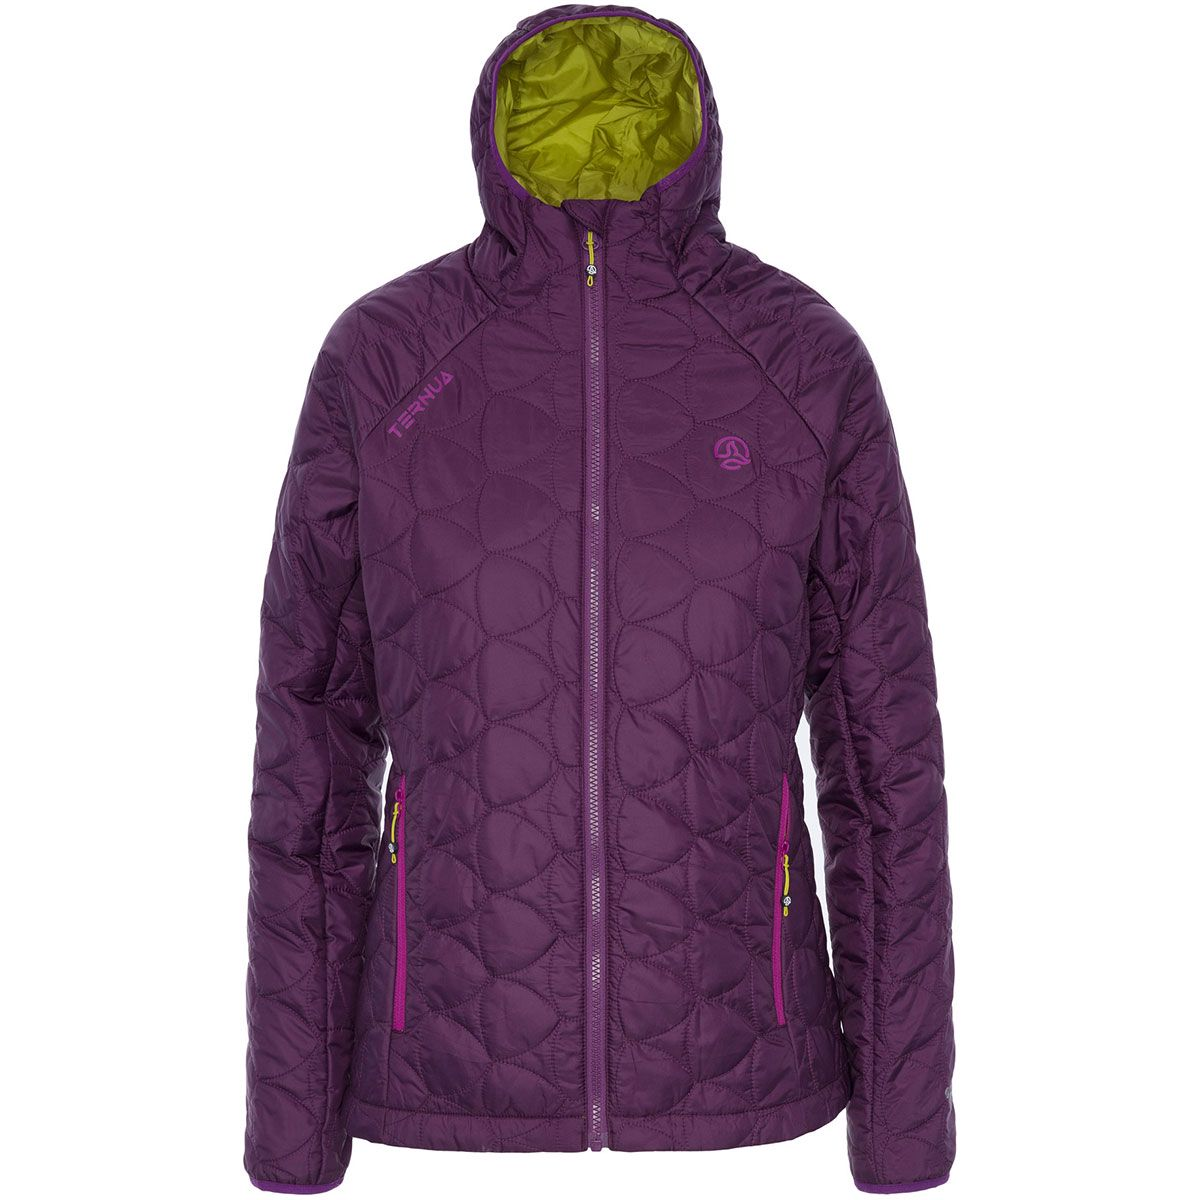 Ternua Damen Longs Peak Jacke (Größe XS, Lila) | Isolationsjacken > Damen